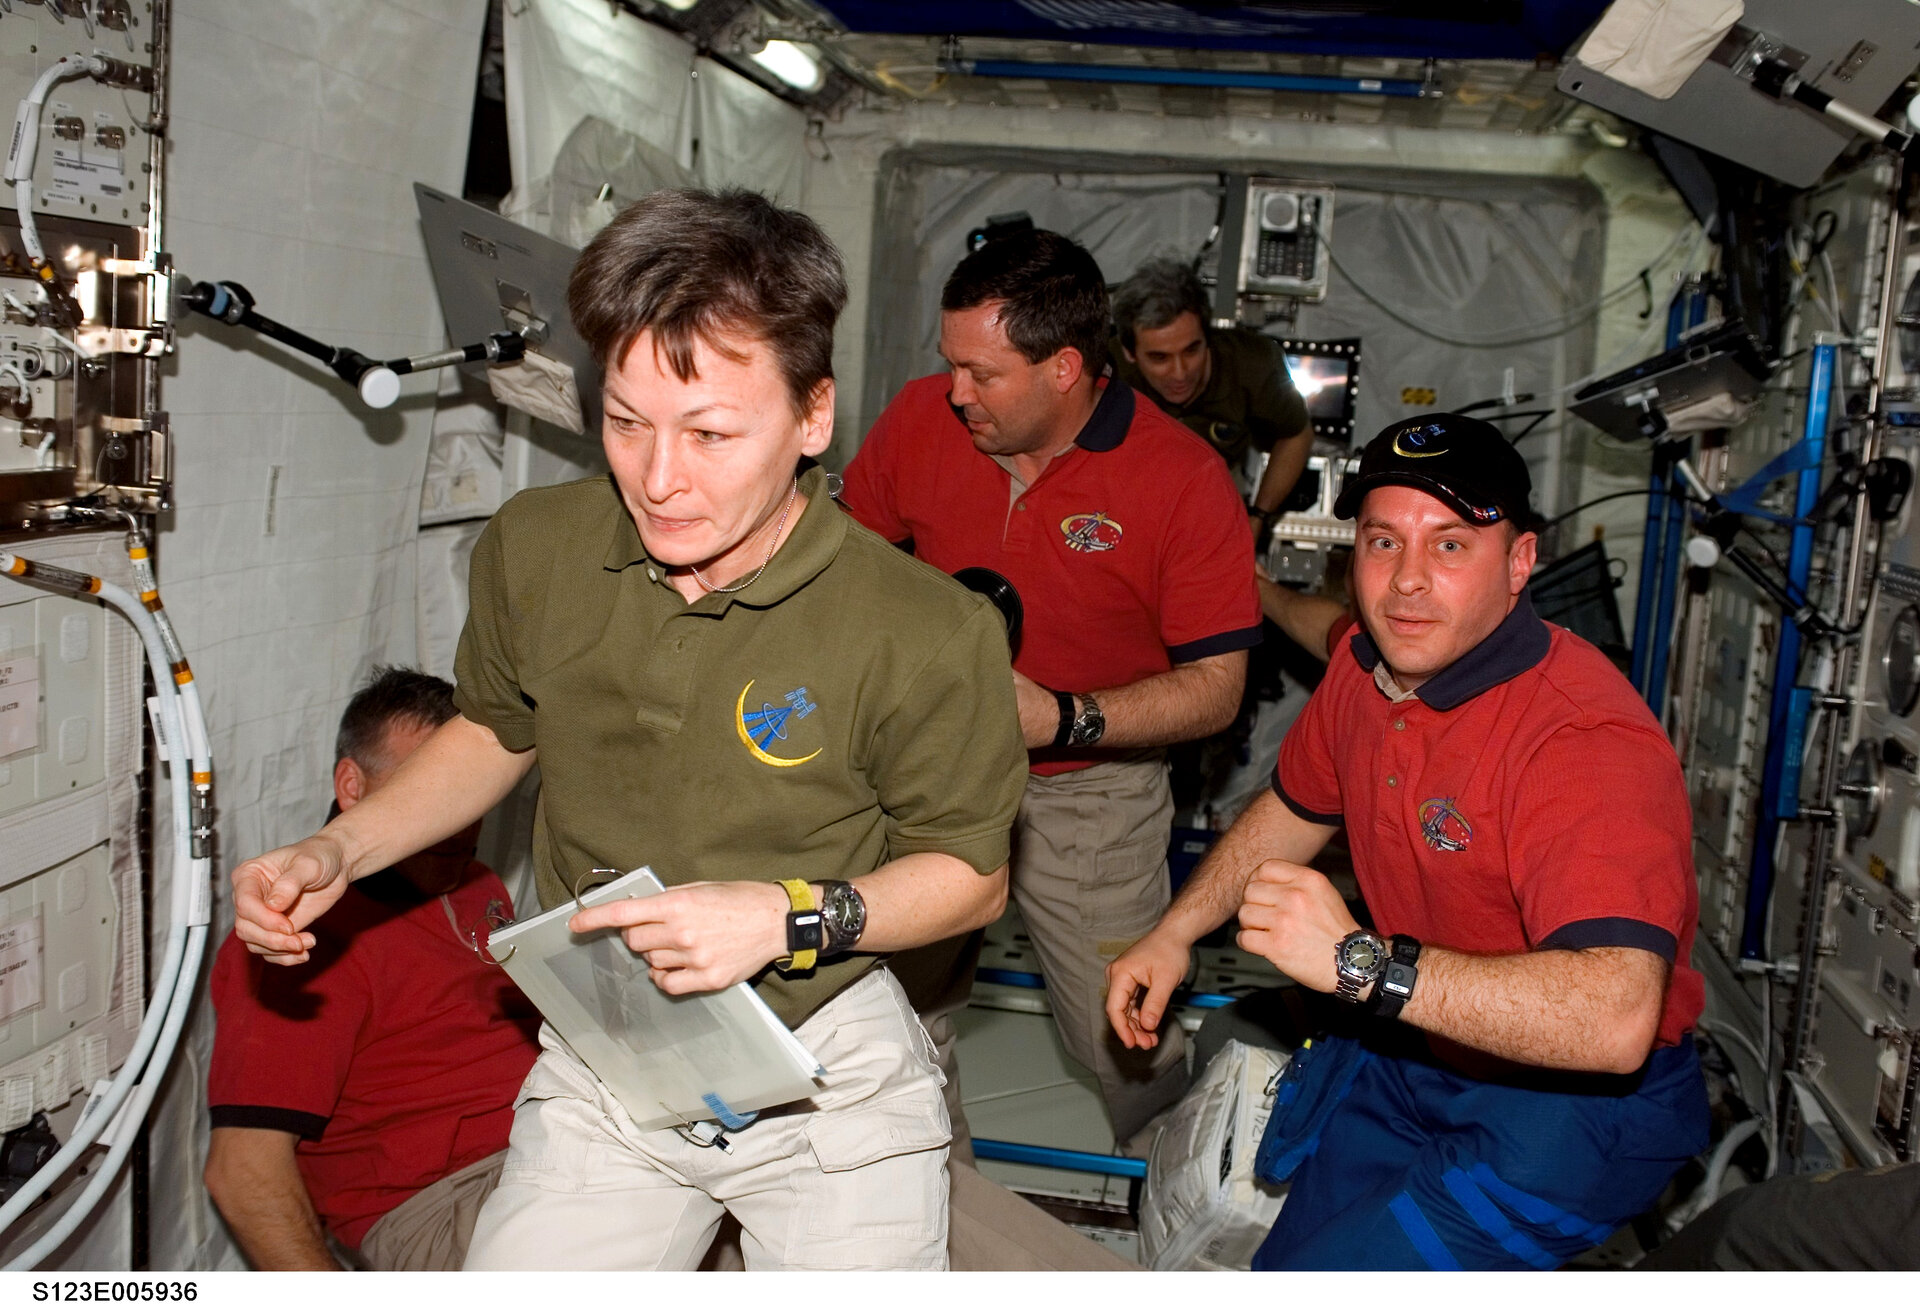 ISS and STS-123 crewmembers at work in Columbus